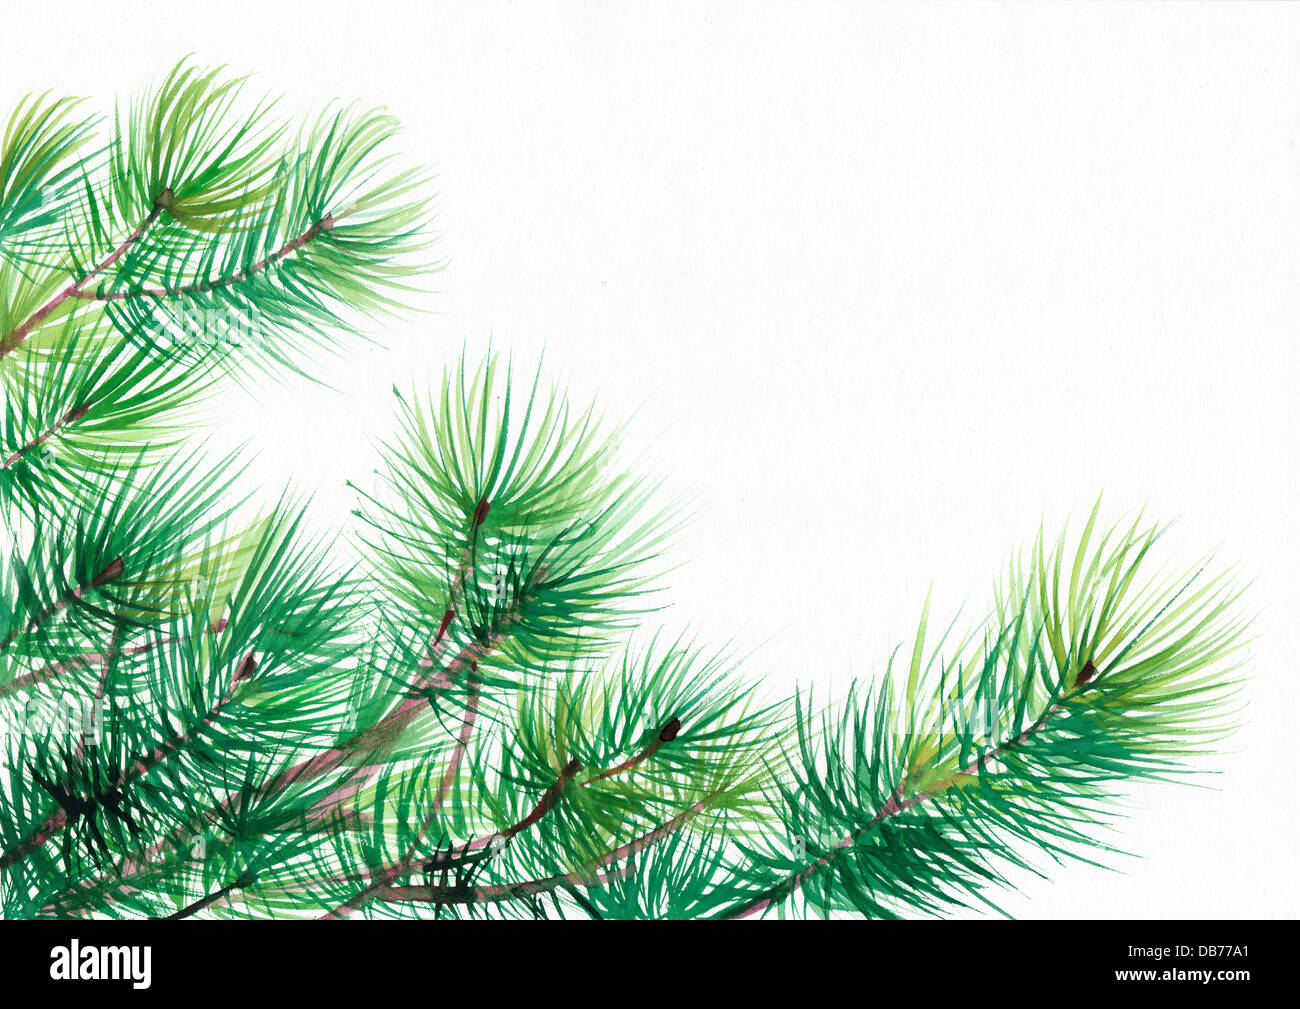 Branches Tree Painting High Resolution Stock Photography And Images Alamy